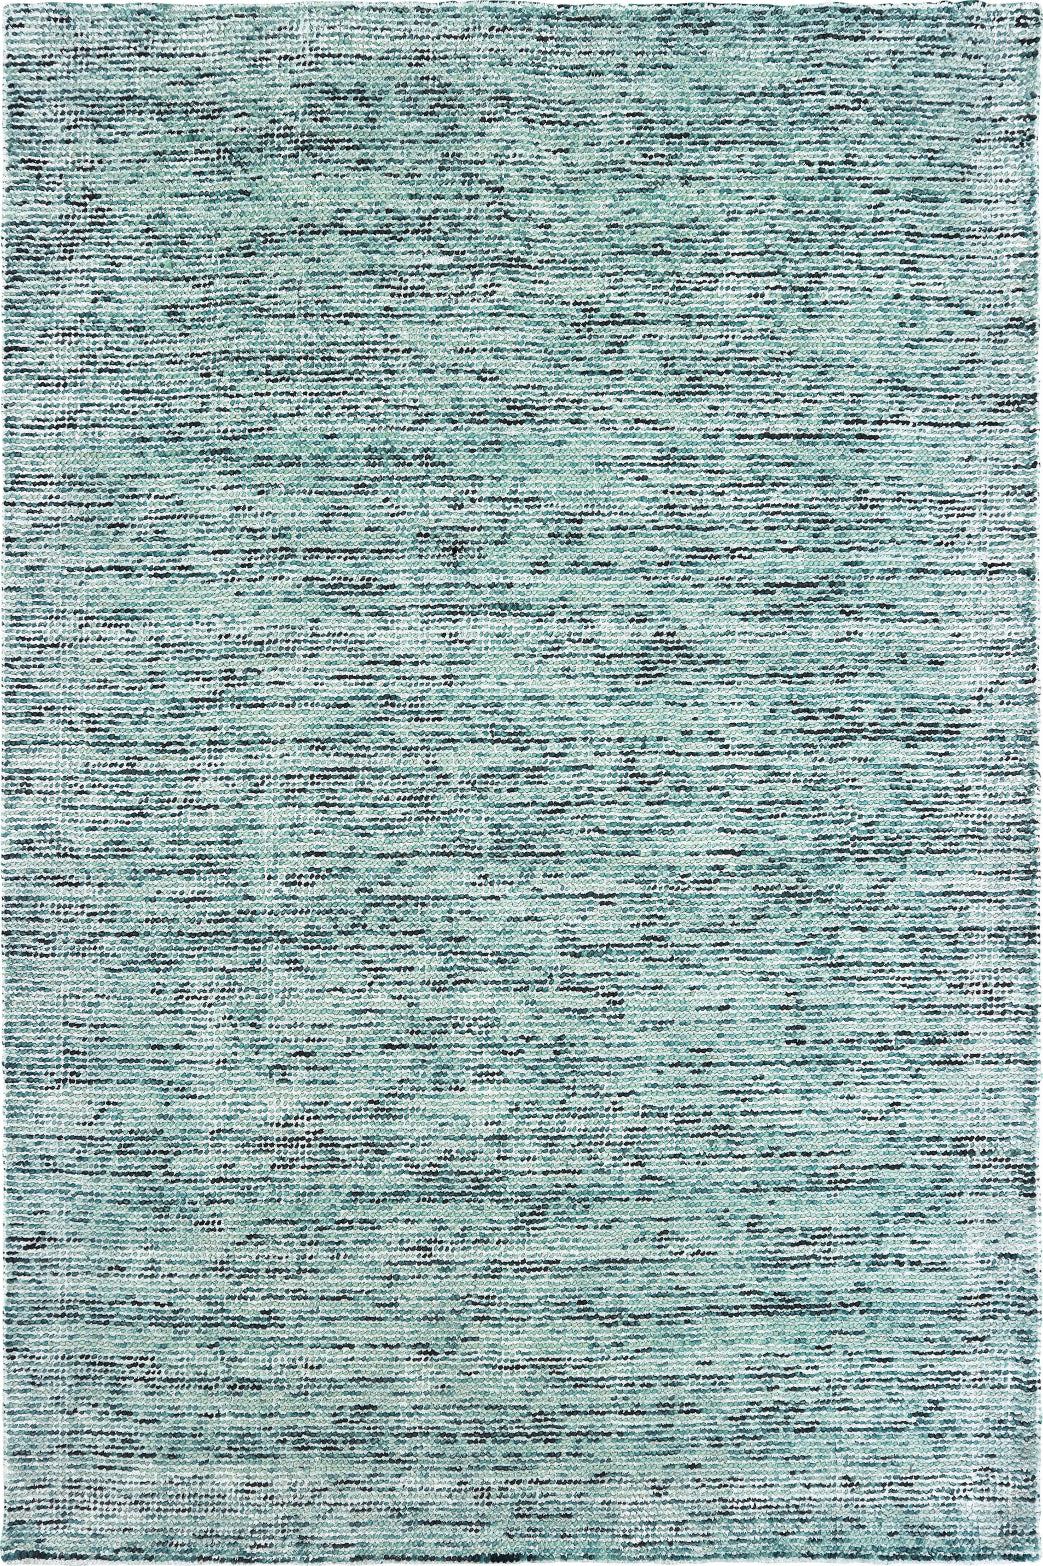 Tommy Bahama Lucent 45901 Blue Teal Area Rug main image